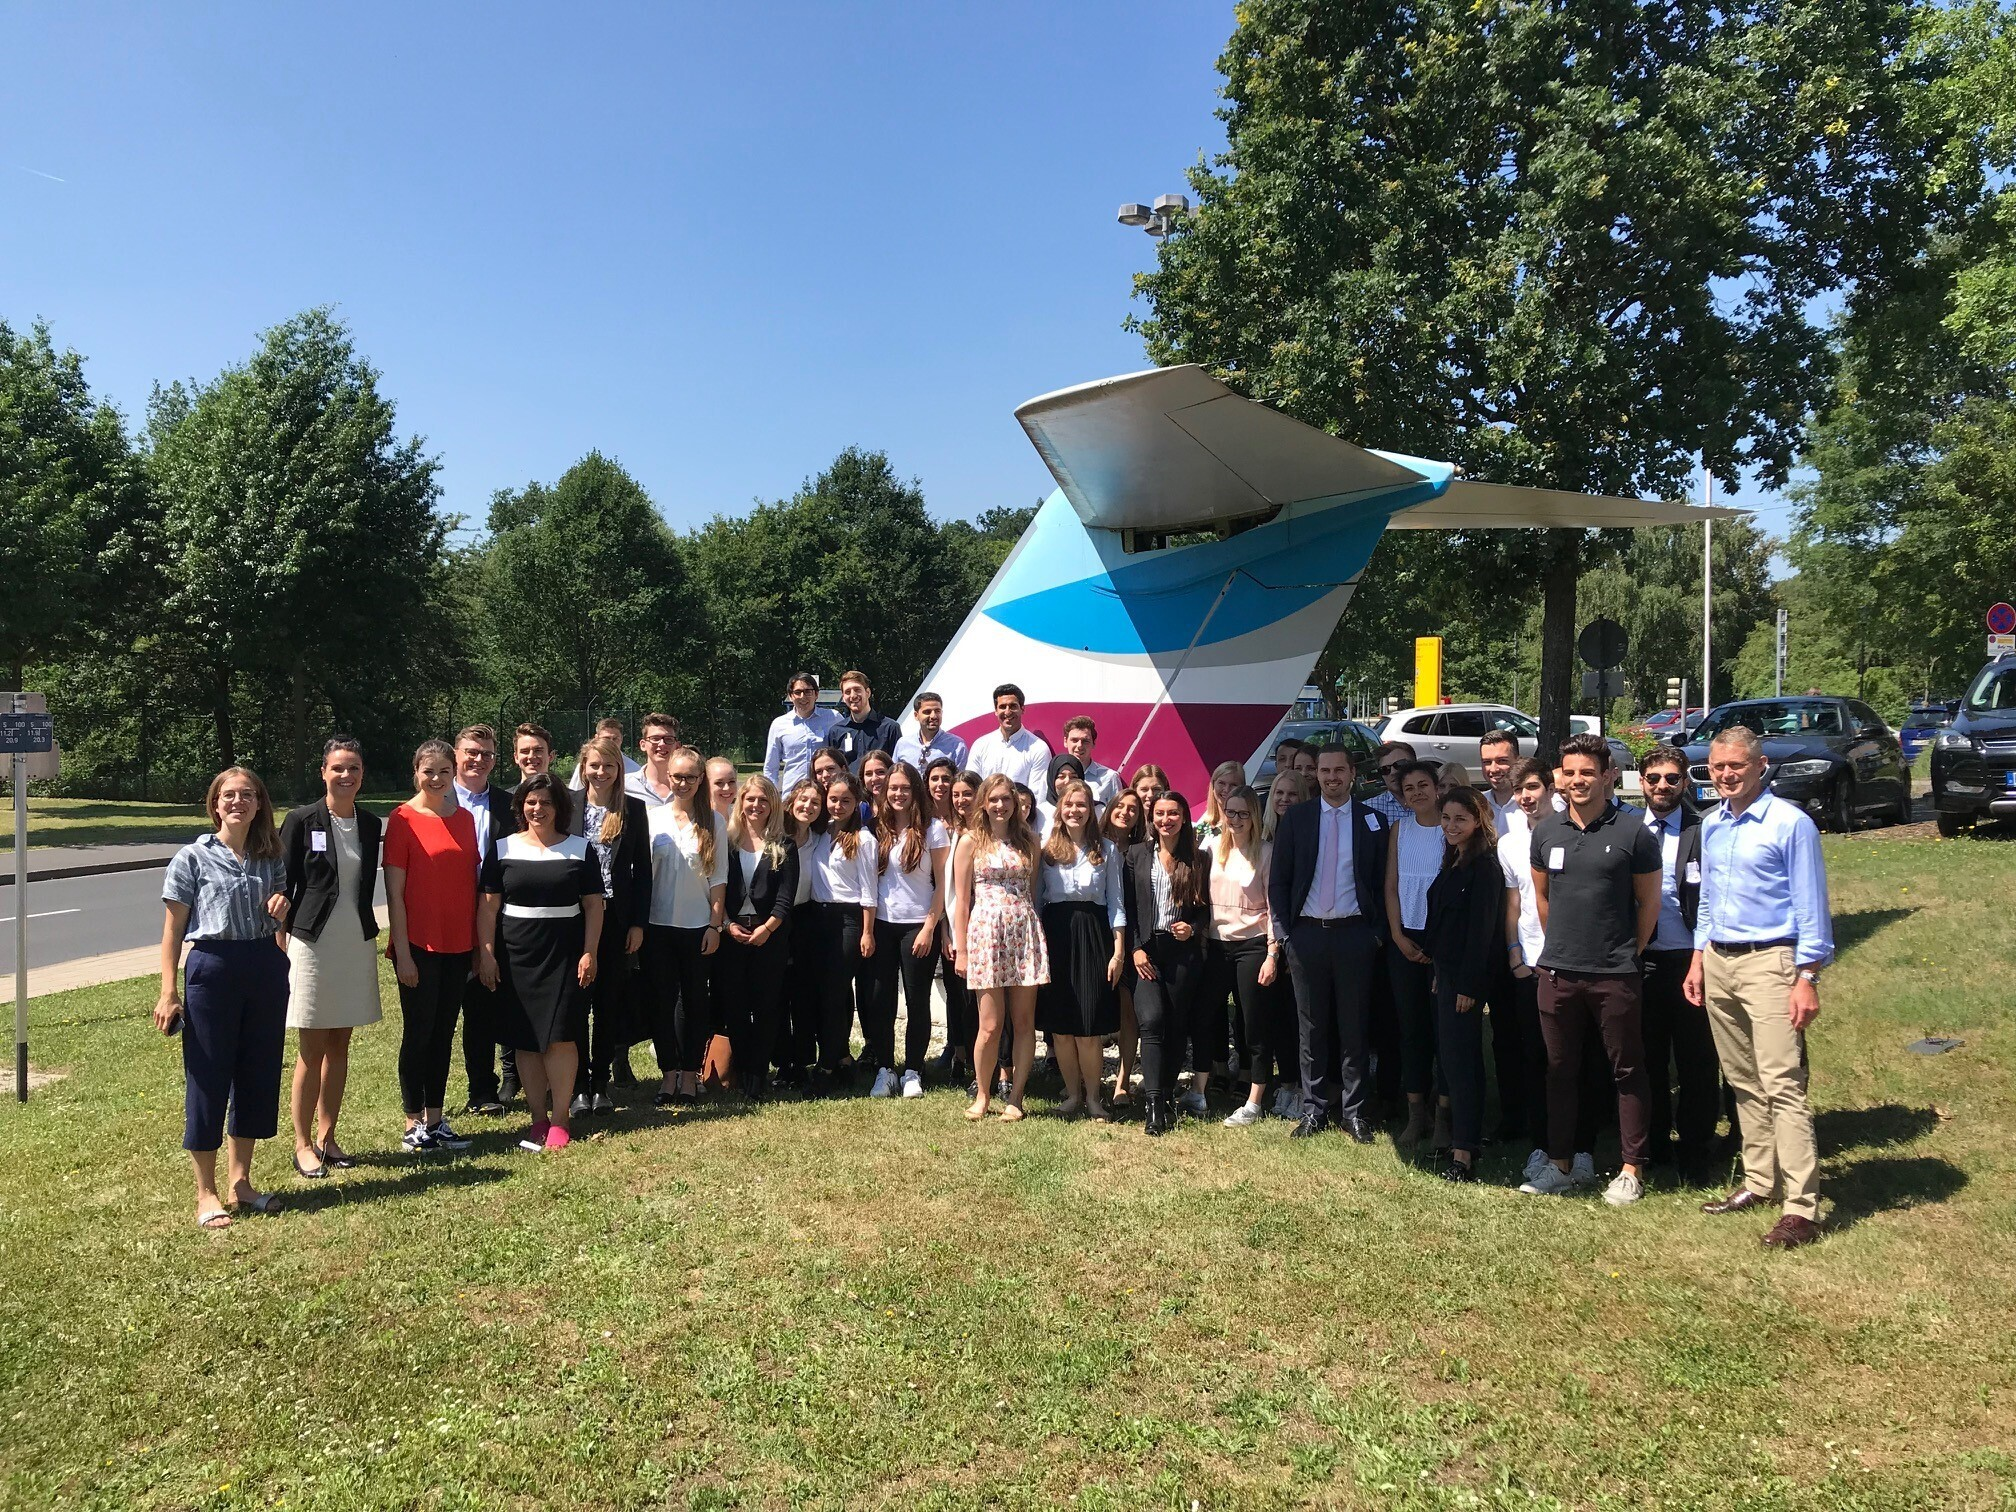 All participants for the event at eurowings